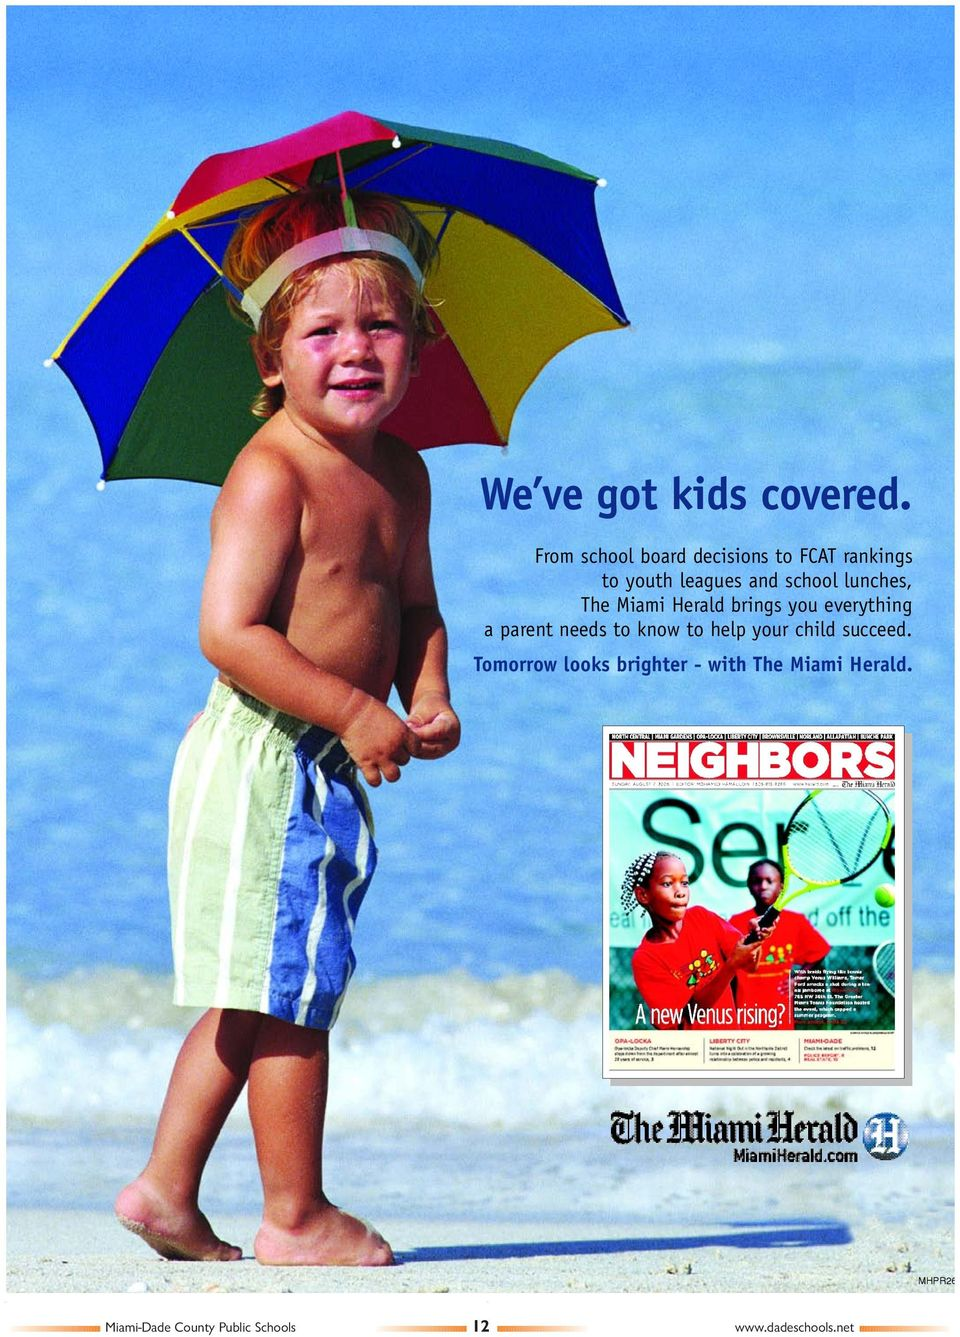 lunches, The Miami Herald brings you everything a parent needs to know to